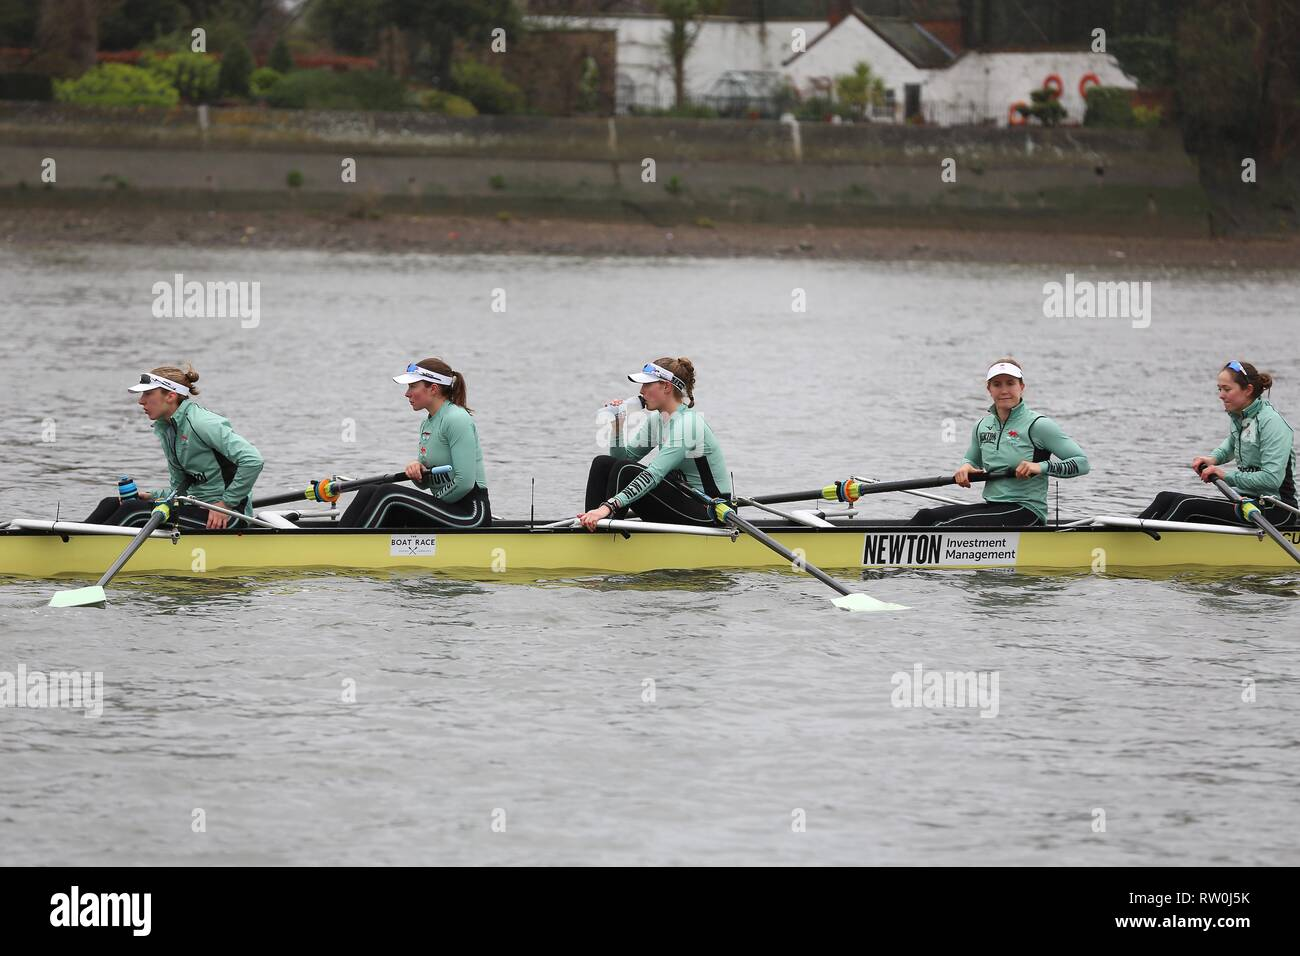 The Boat Race CUWBC vs Oxford Brookes  3 February 2019 - Stock Image